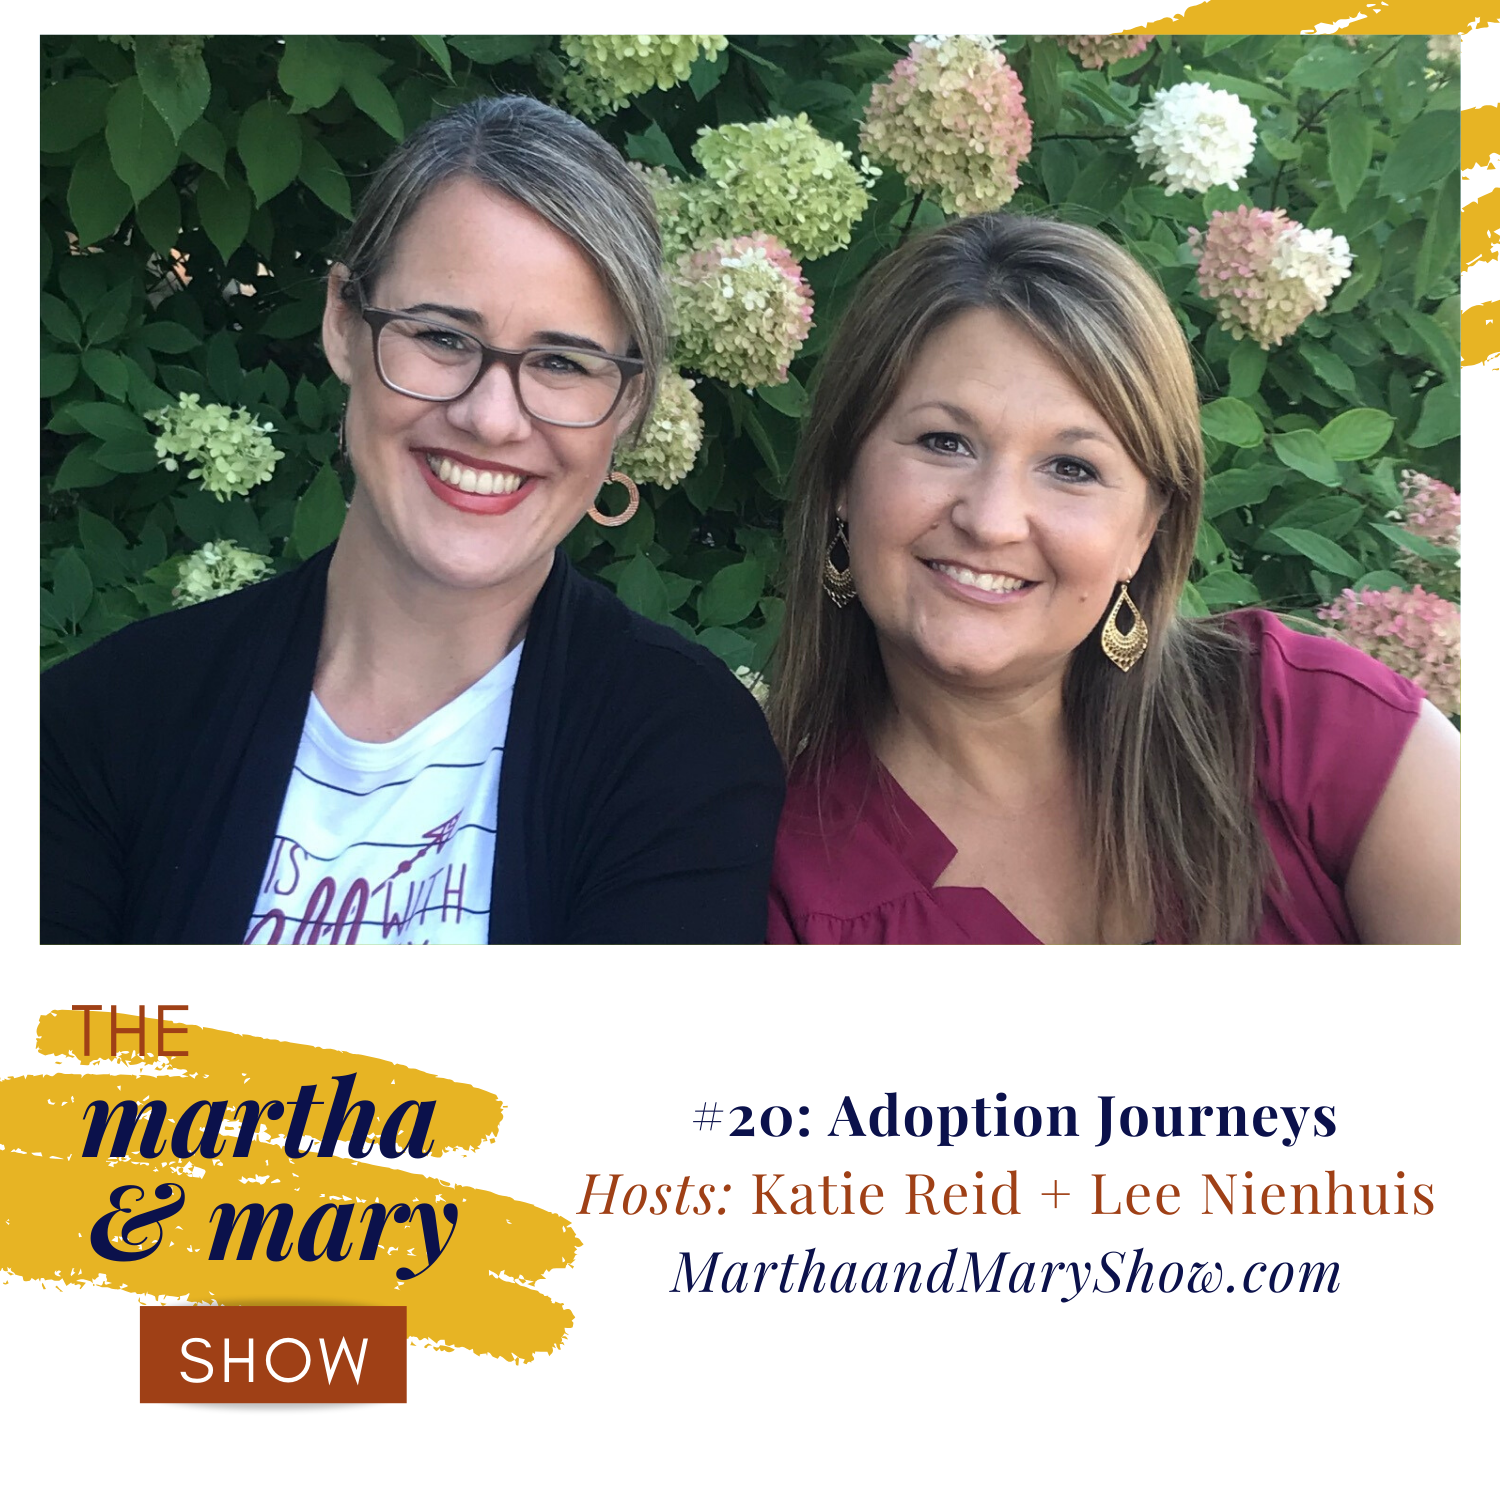 Adoption Journeys Episode 20 Martha Mary Show Lee Nienhuis Katie Reid podcast